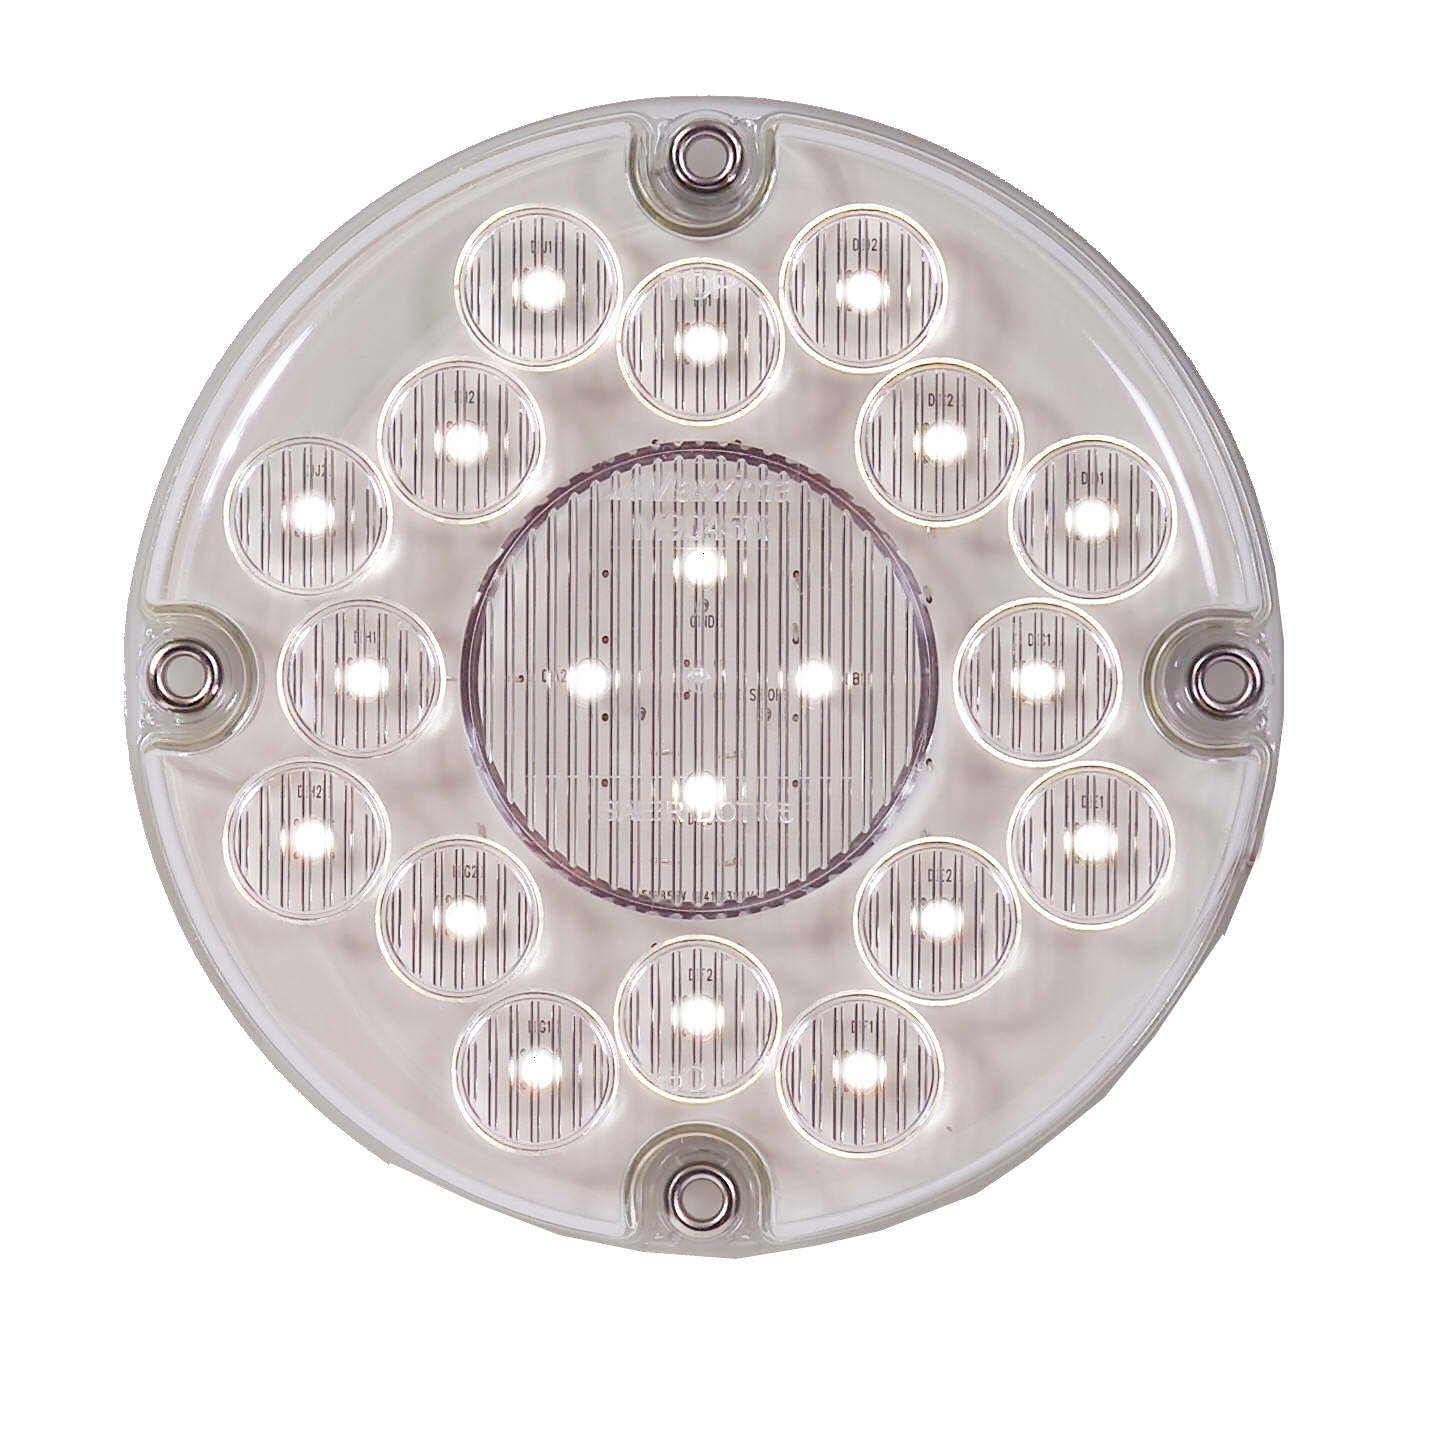 Maxxima M90450 White 7'' Round Bus LED Backup Light by Maxxima